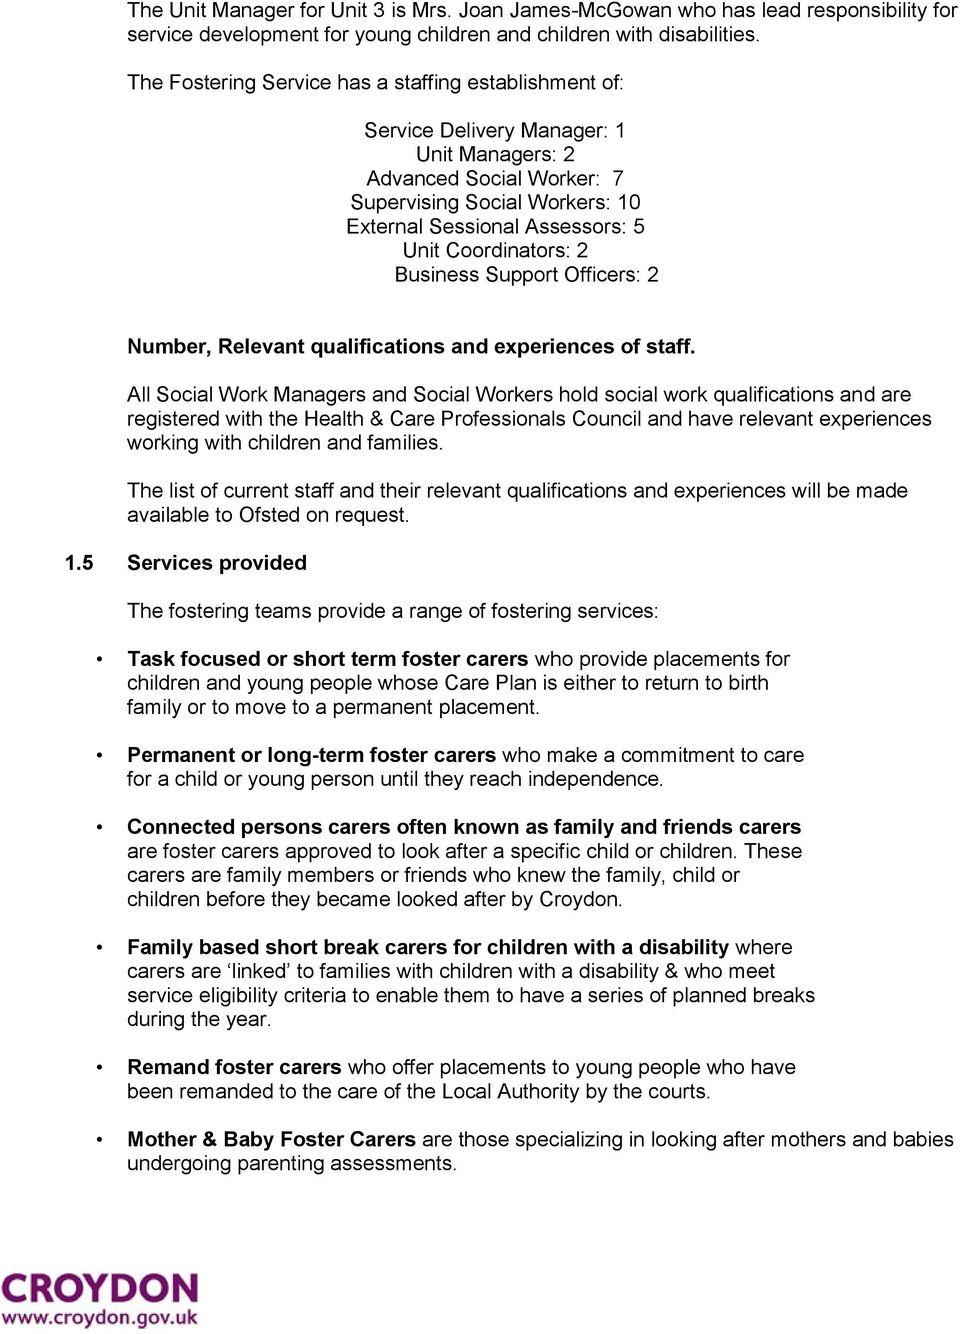 croydon council fostering service statement of purpose 2015 pdf coordinators 2 business support officers 2 number relevant qualifications and experiences of staff